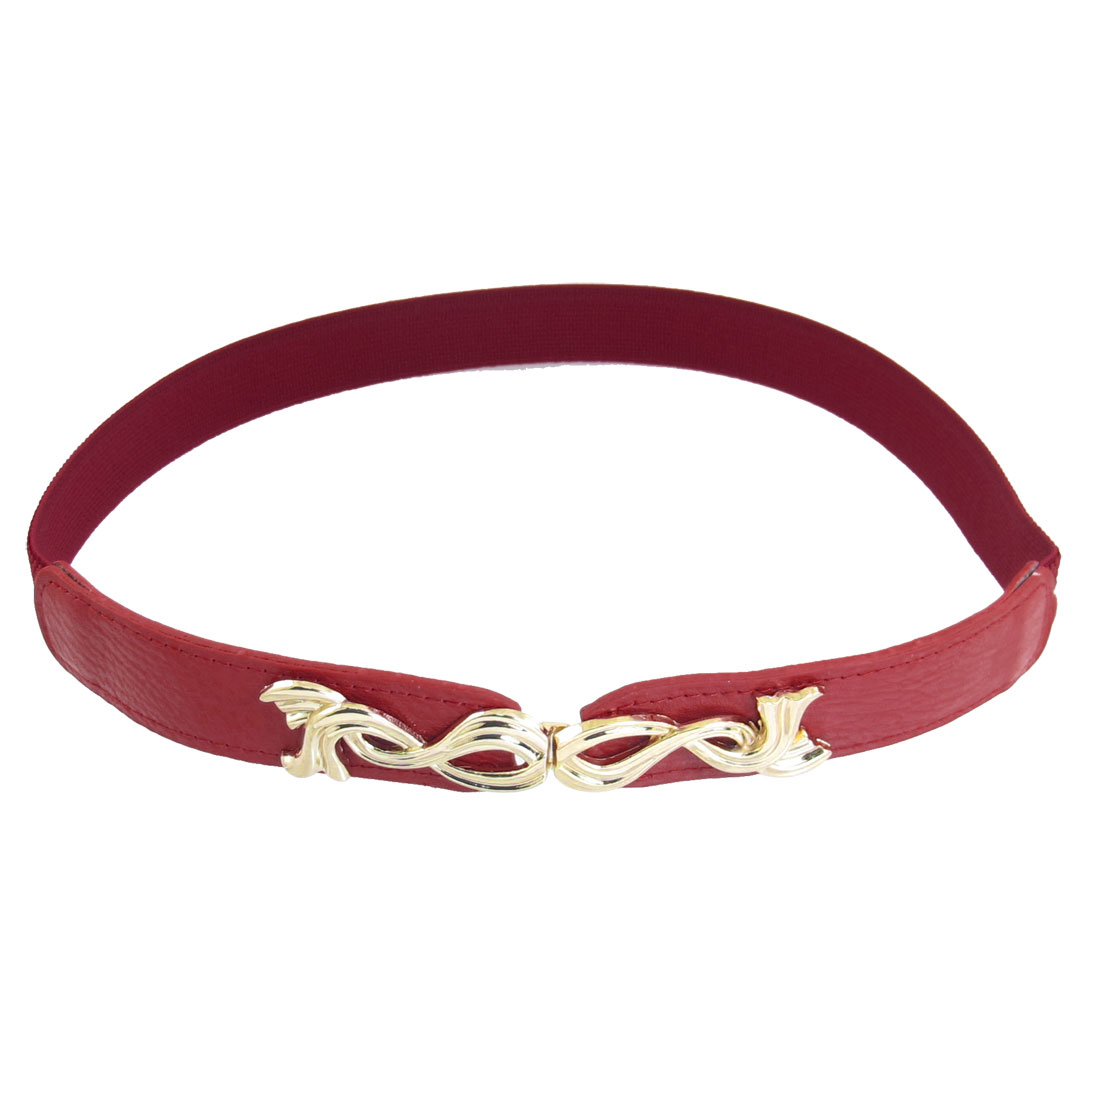 Gold Tone Double Fish Interlock Buckle Stretchy High Waist Belt Red for Woman